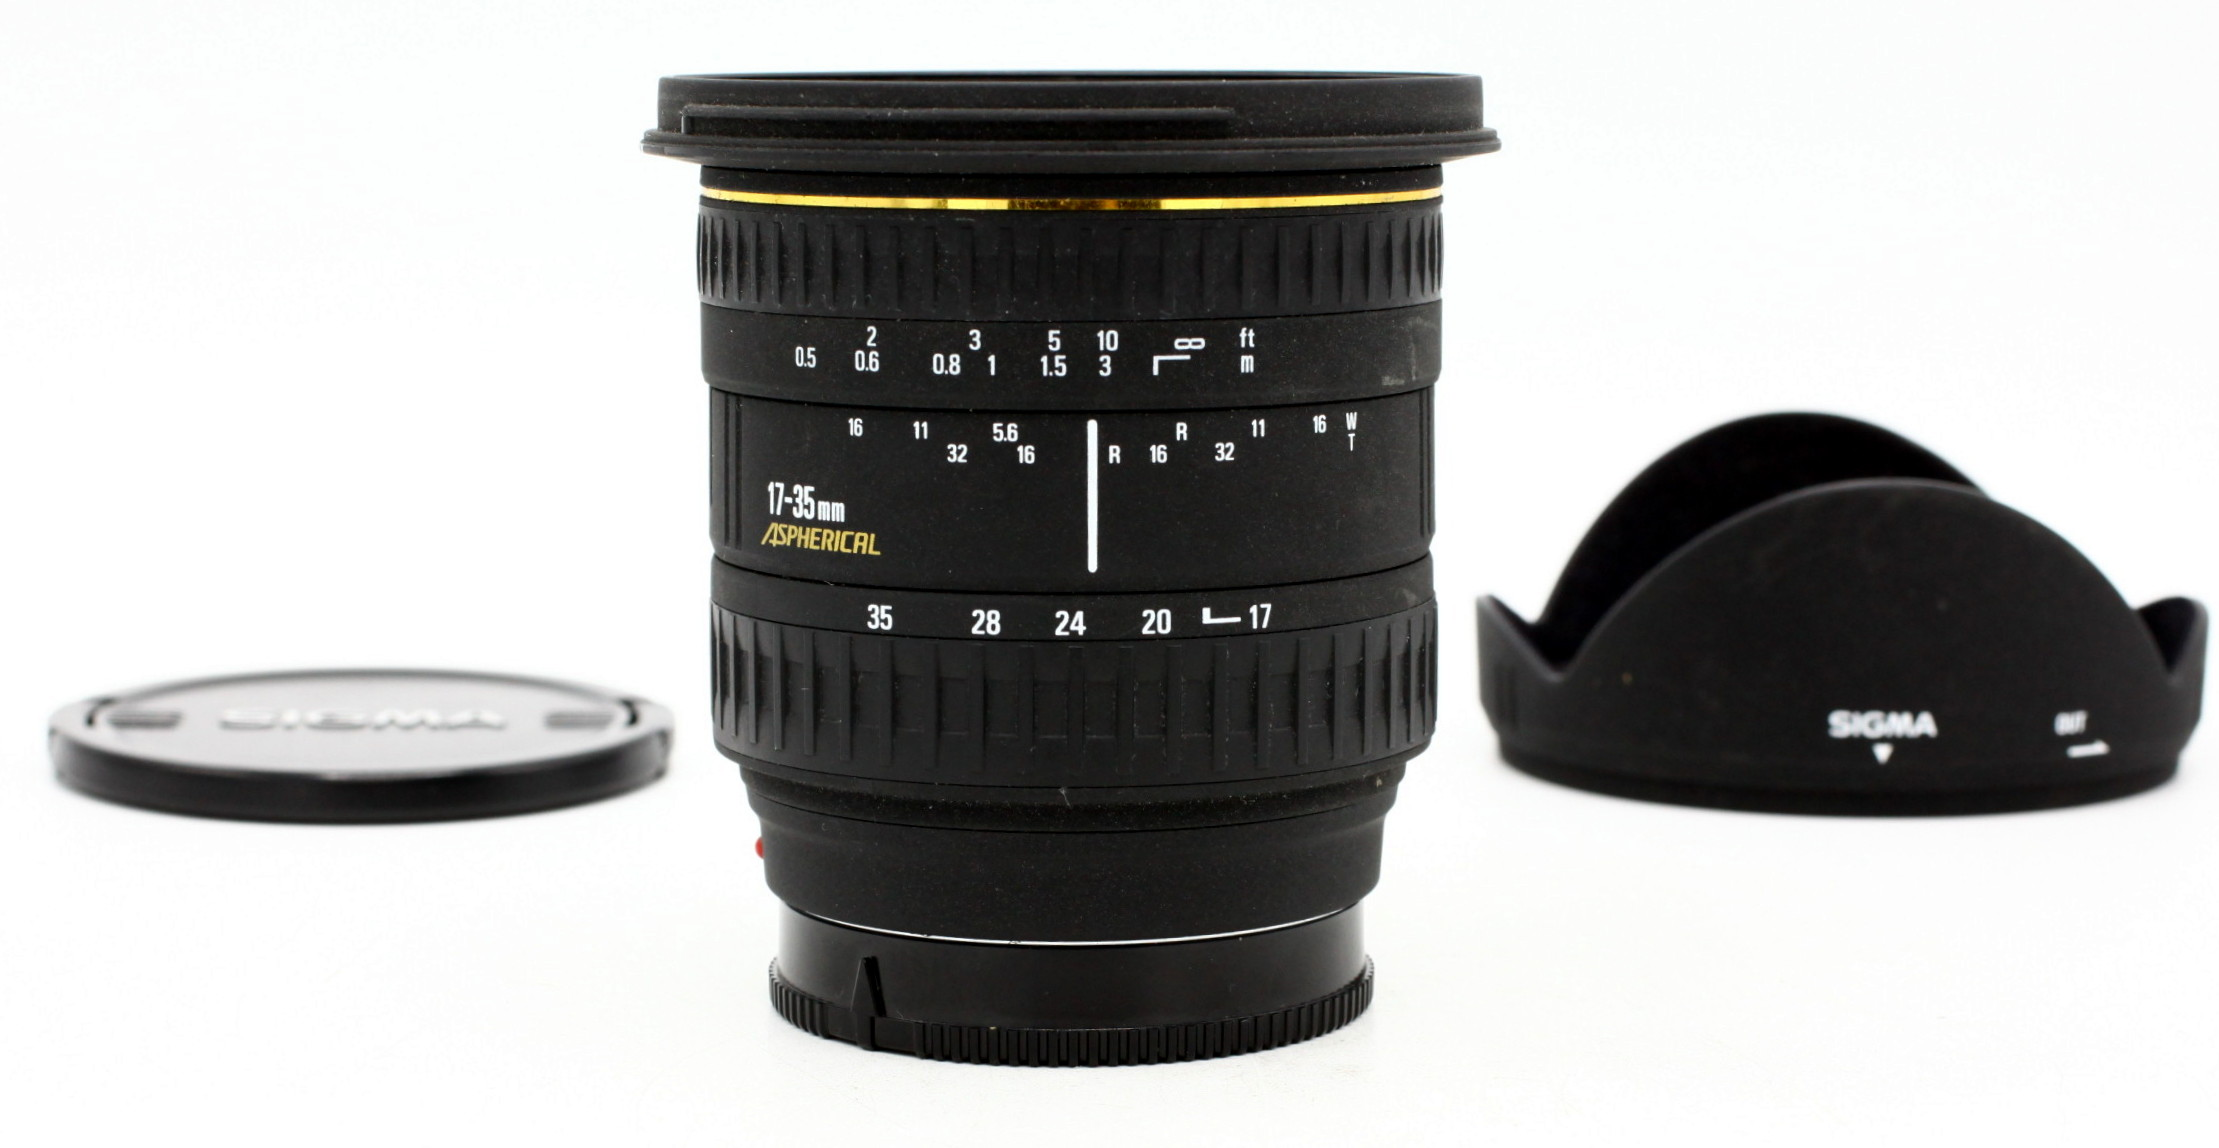 Sigma 17-35mm F/2.8-4D EX Aspherical Sony occasion